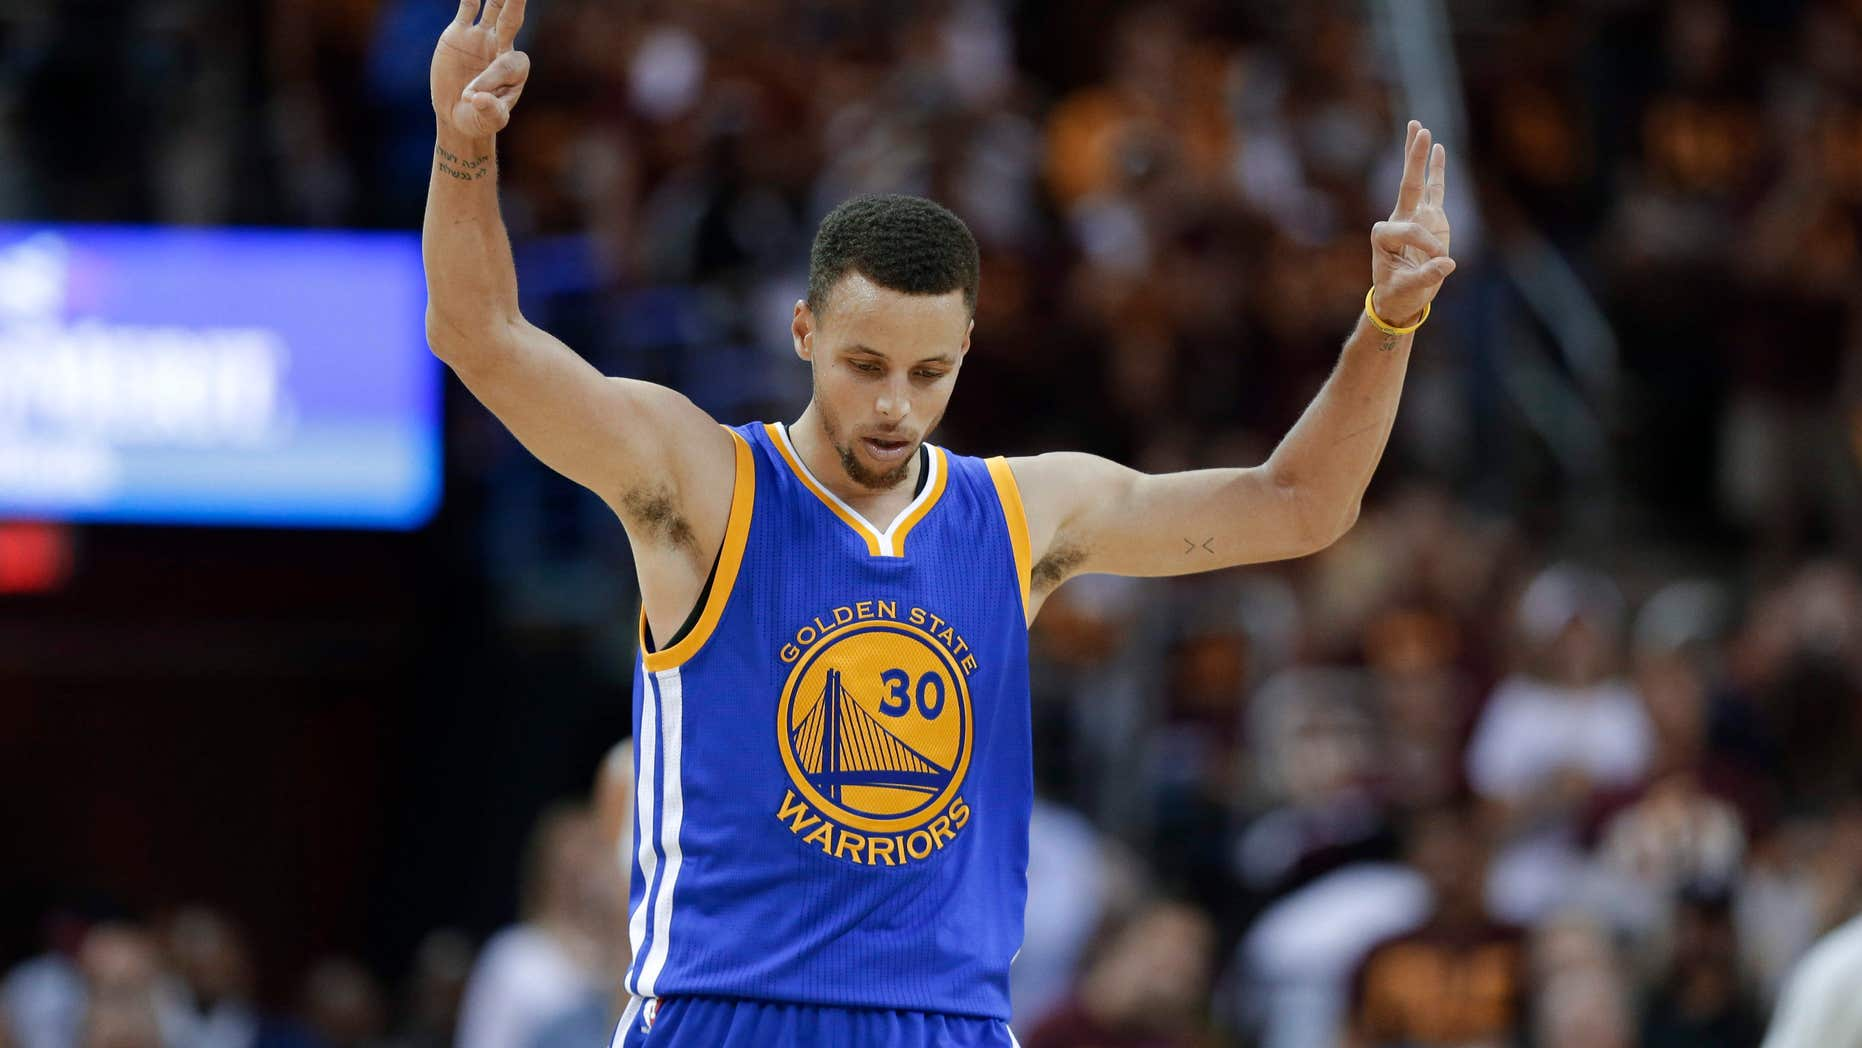 June 10, 2016: Golden State Warriors guard Stephen Curry celebrates a basket against the Cleveland Cavaliers during the second half of Game 4 of basketball's NBA Finals in Cleveland.